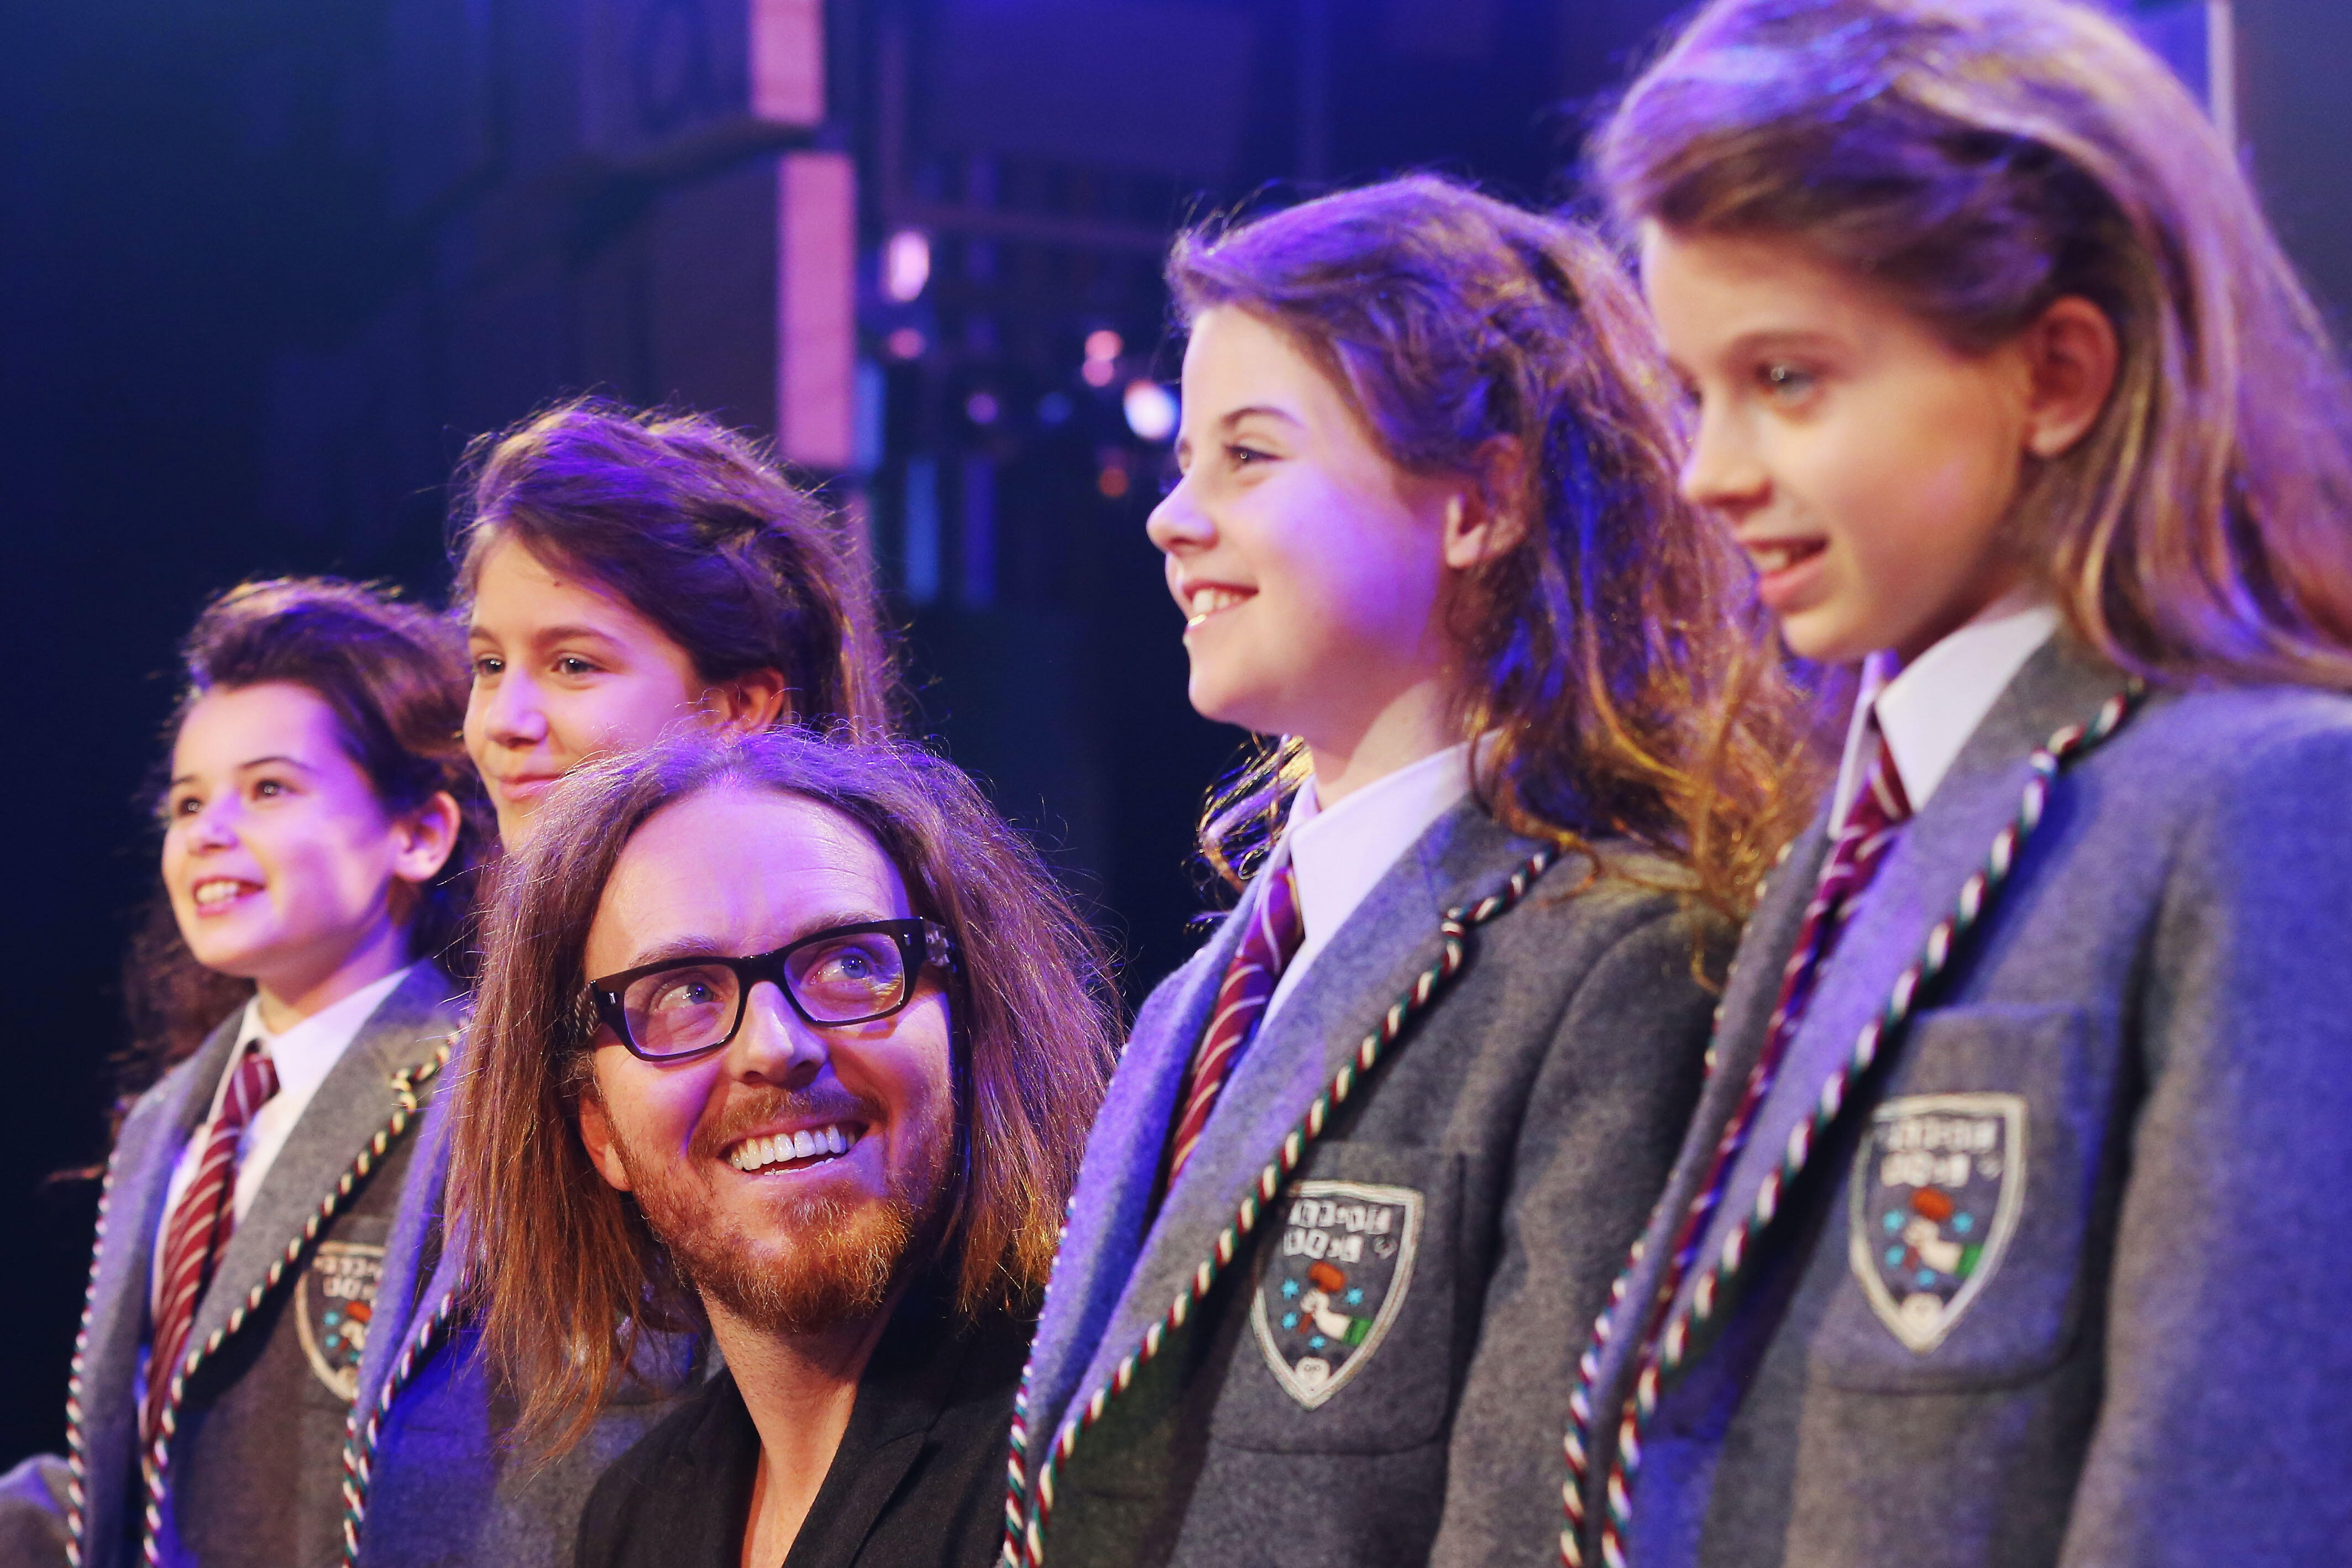 Musical director Tim Minchin poses with the four Matilda cast members (L-R) Dusty Bursill, Tiana Mirra, Alannah Parfett and Ingrid Torelli perform during a media call for Matilda The Musical at Princess Theatre on March 16, 2016 in Melbourne, Australia